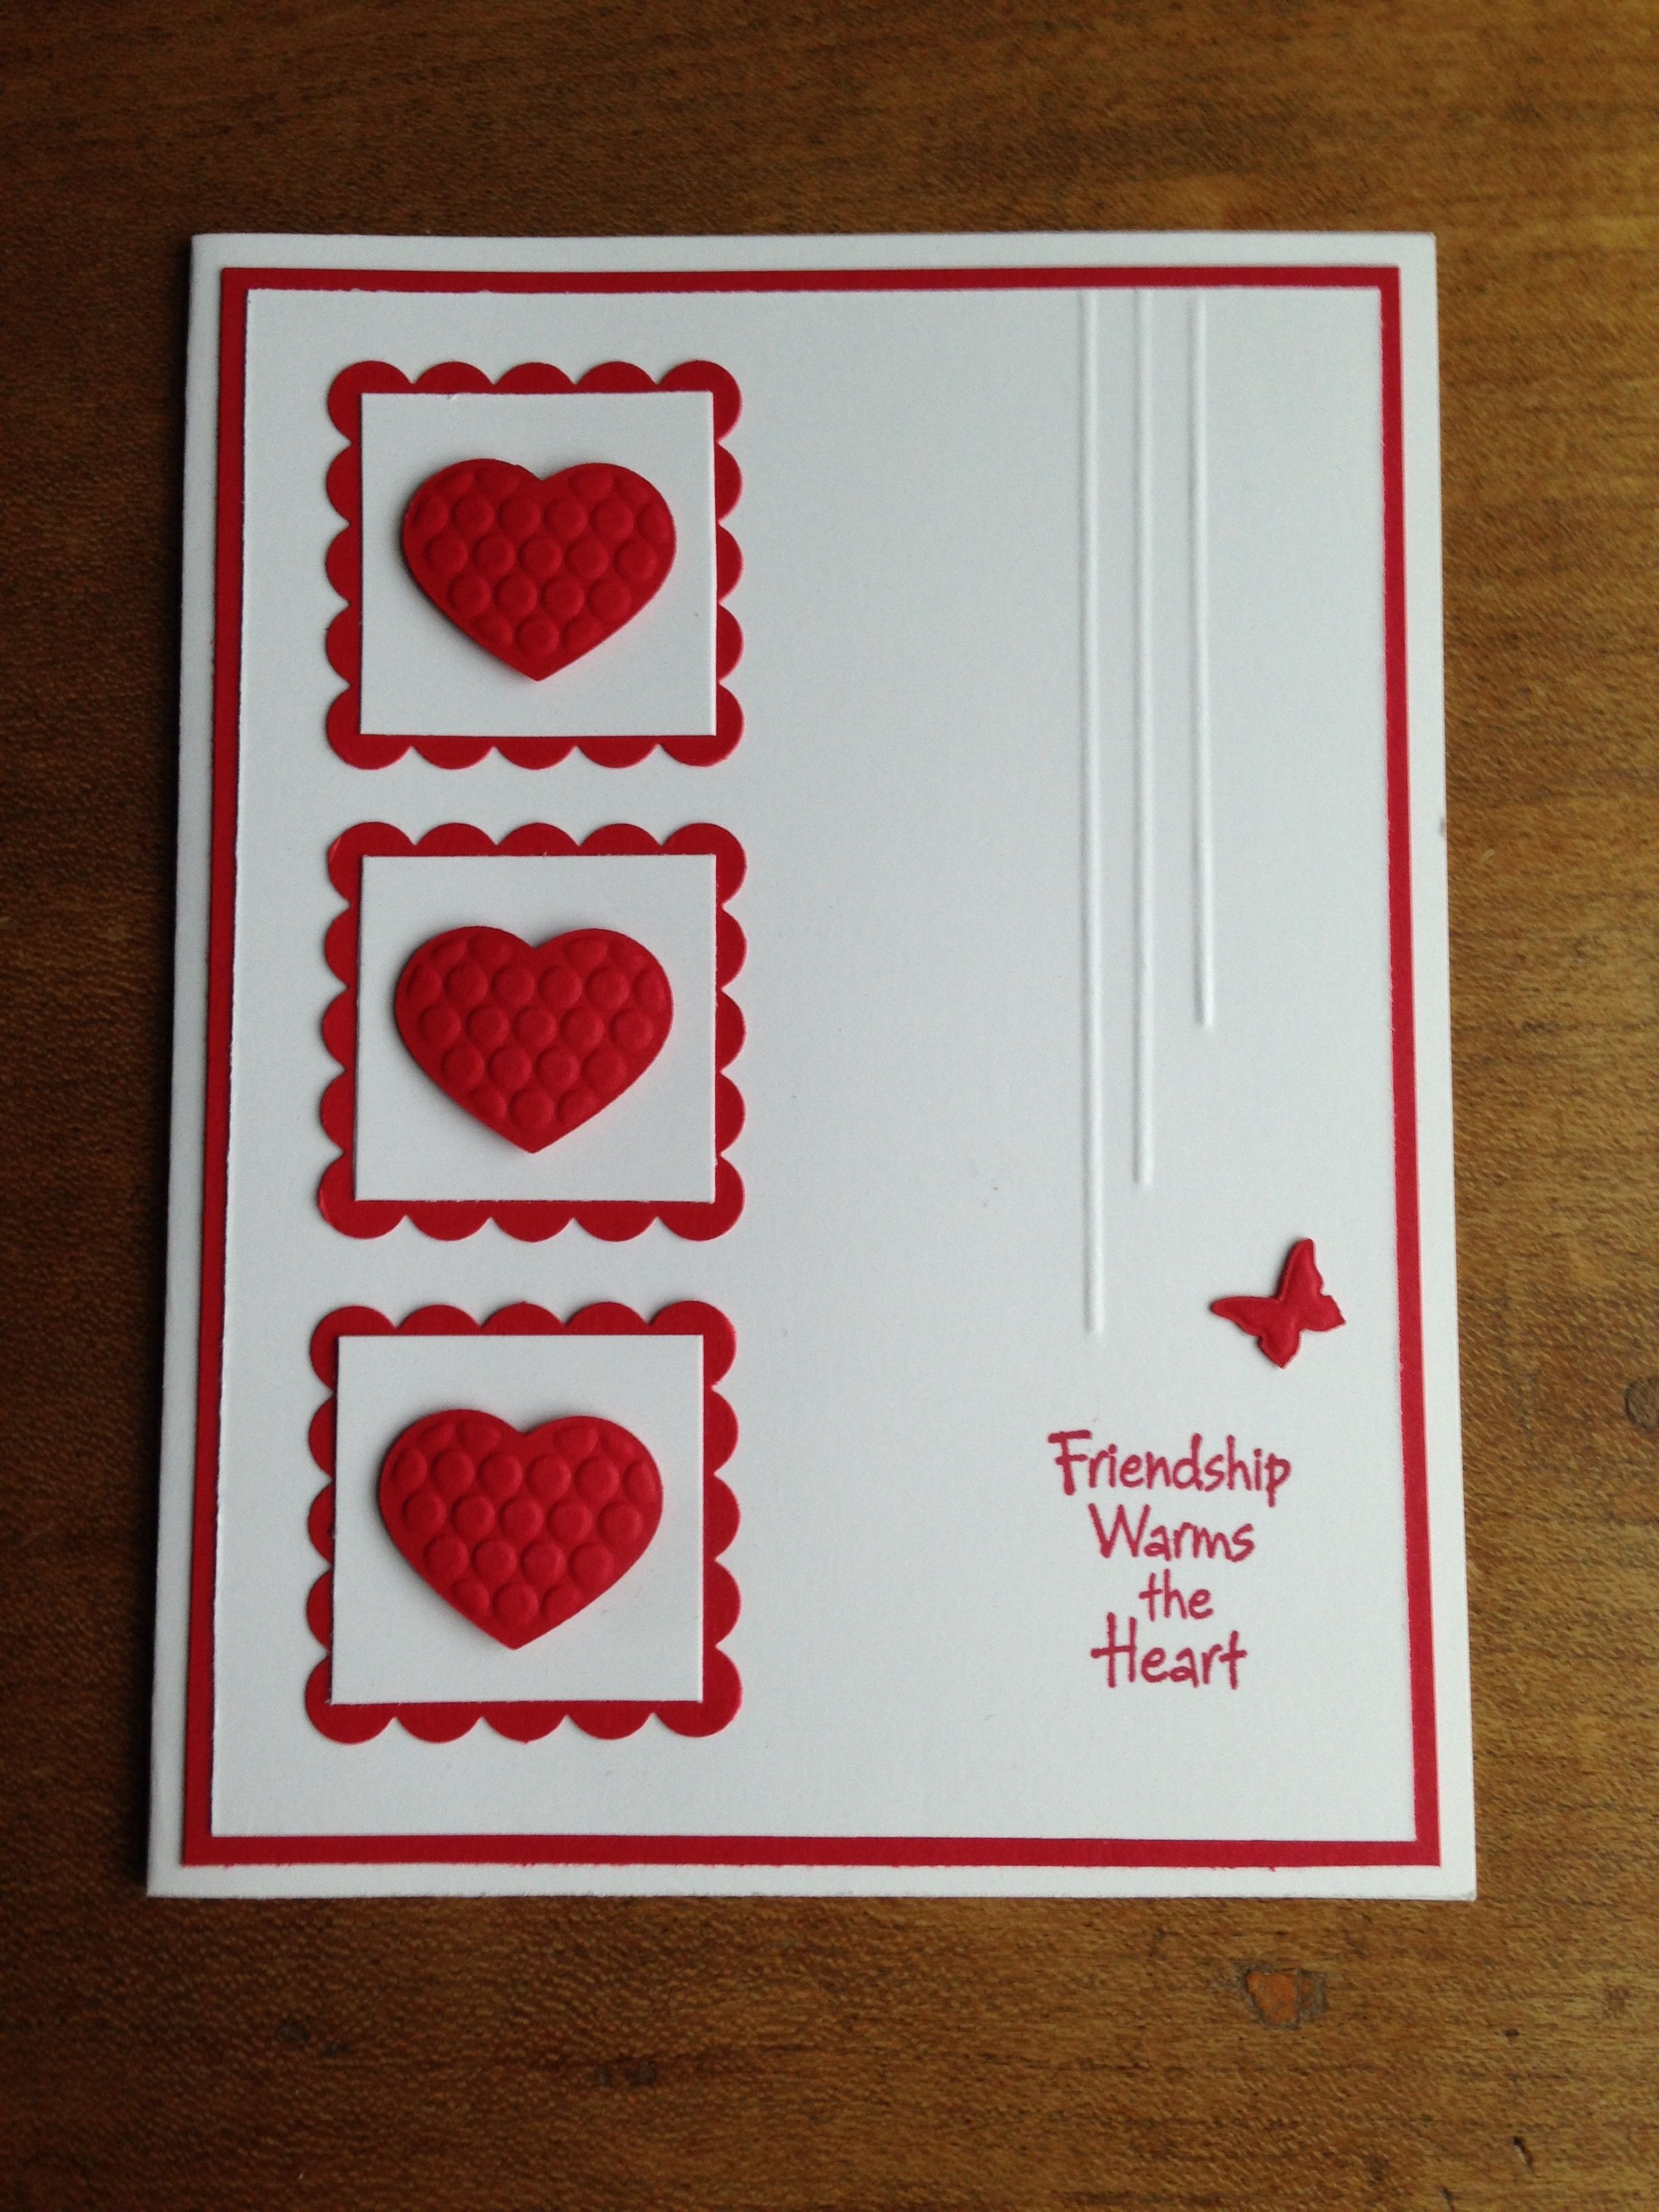 Stampin Up Real Red And Whisper White Cardstock Were Used For This